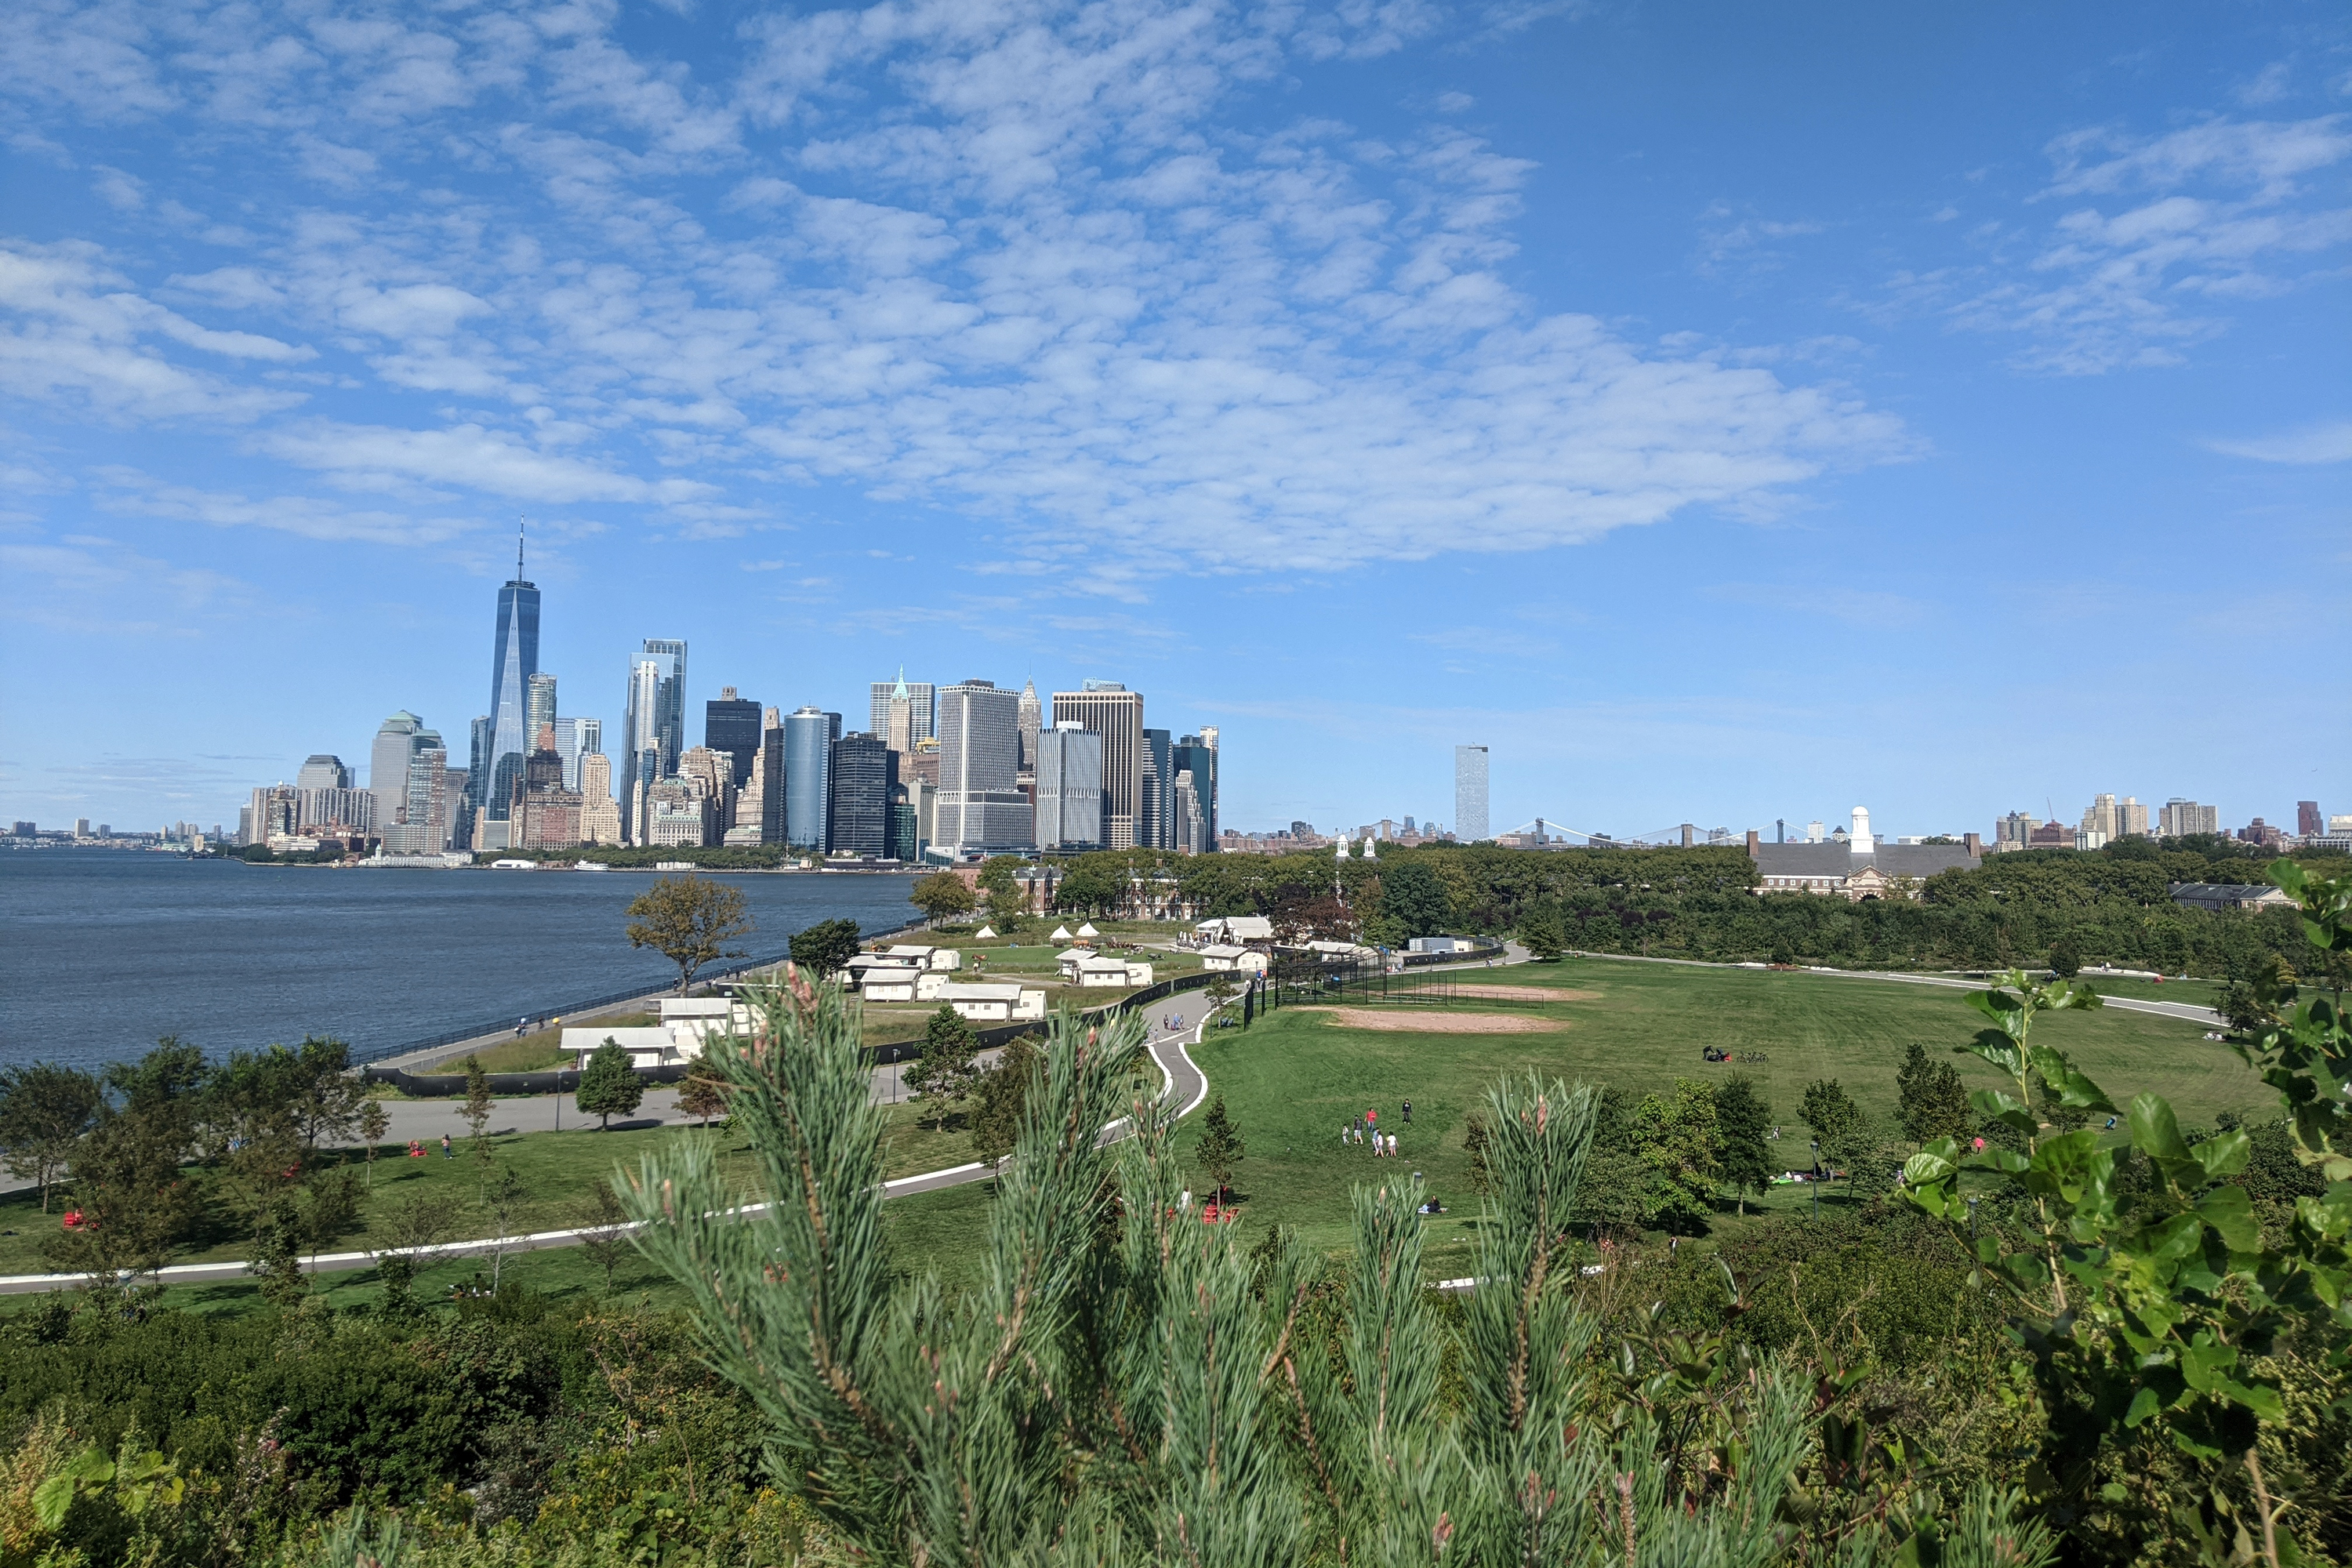 Governors Island, with Manhattan in background, Sept. 20, 2020.